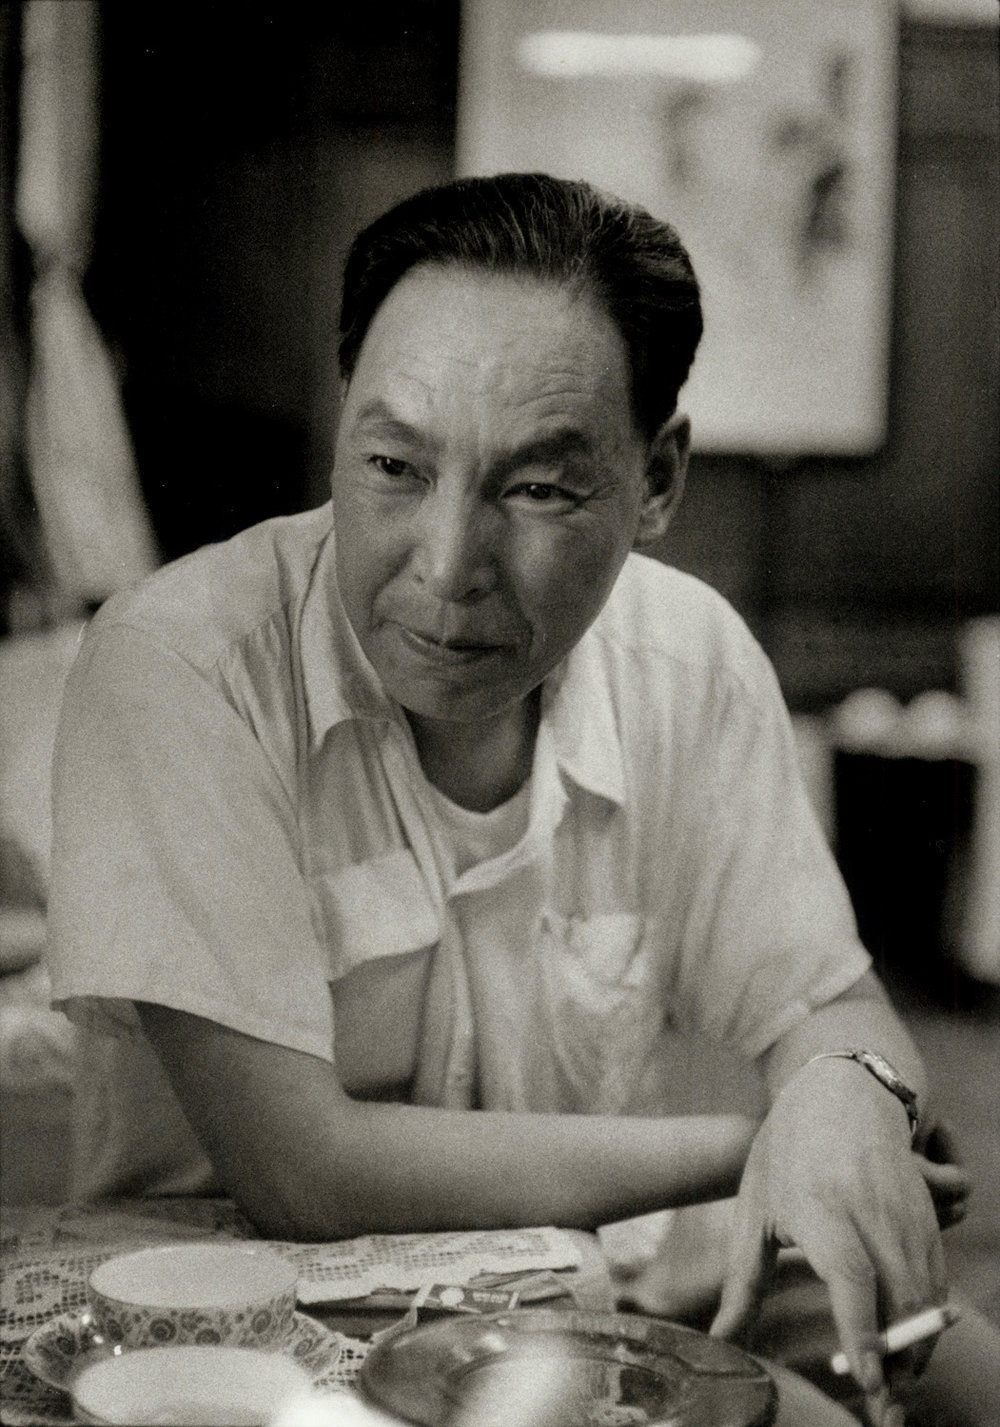 Shao Chu-Li, writer, Peking. China, 1956. C037-10)